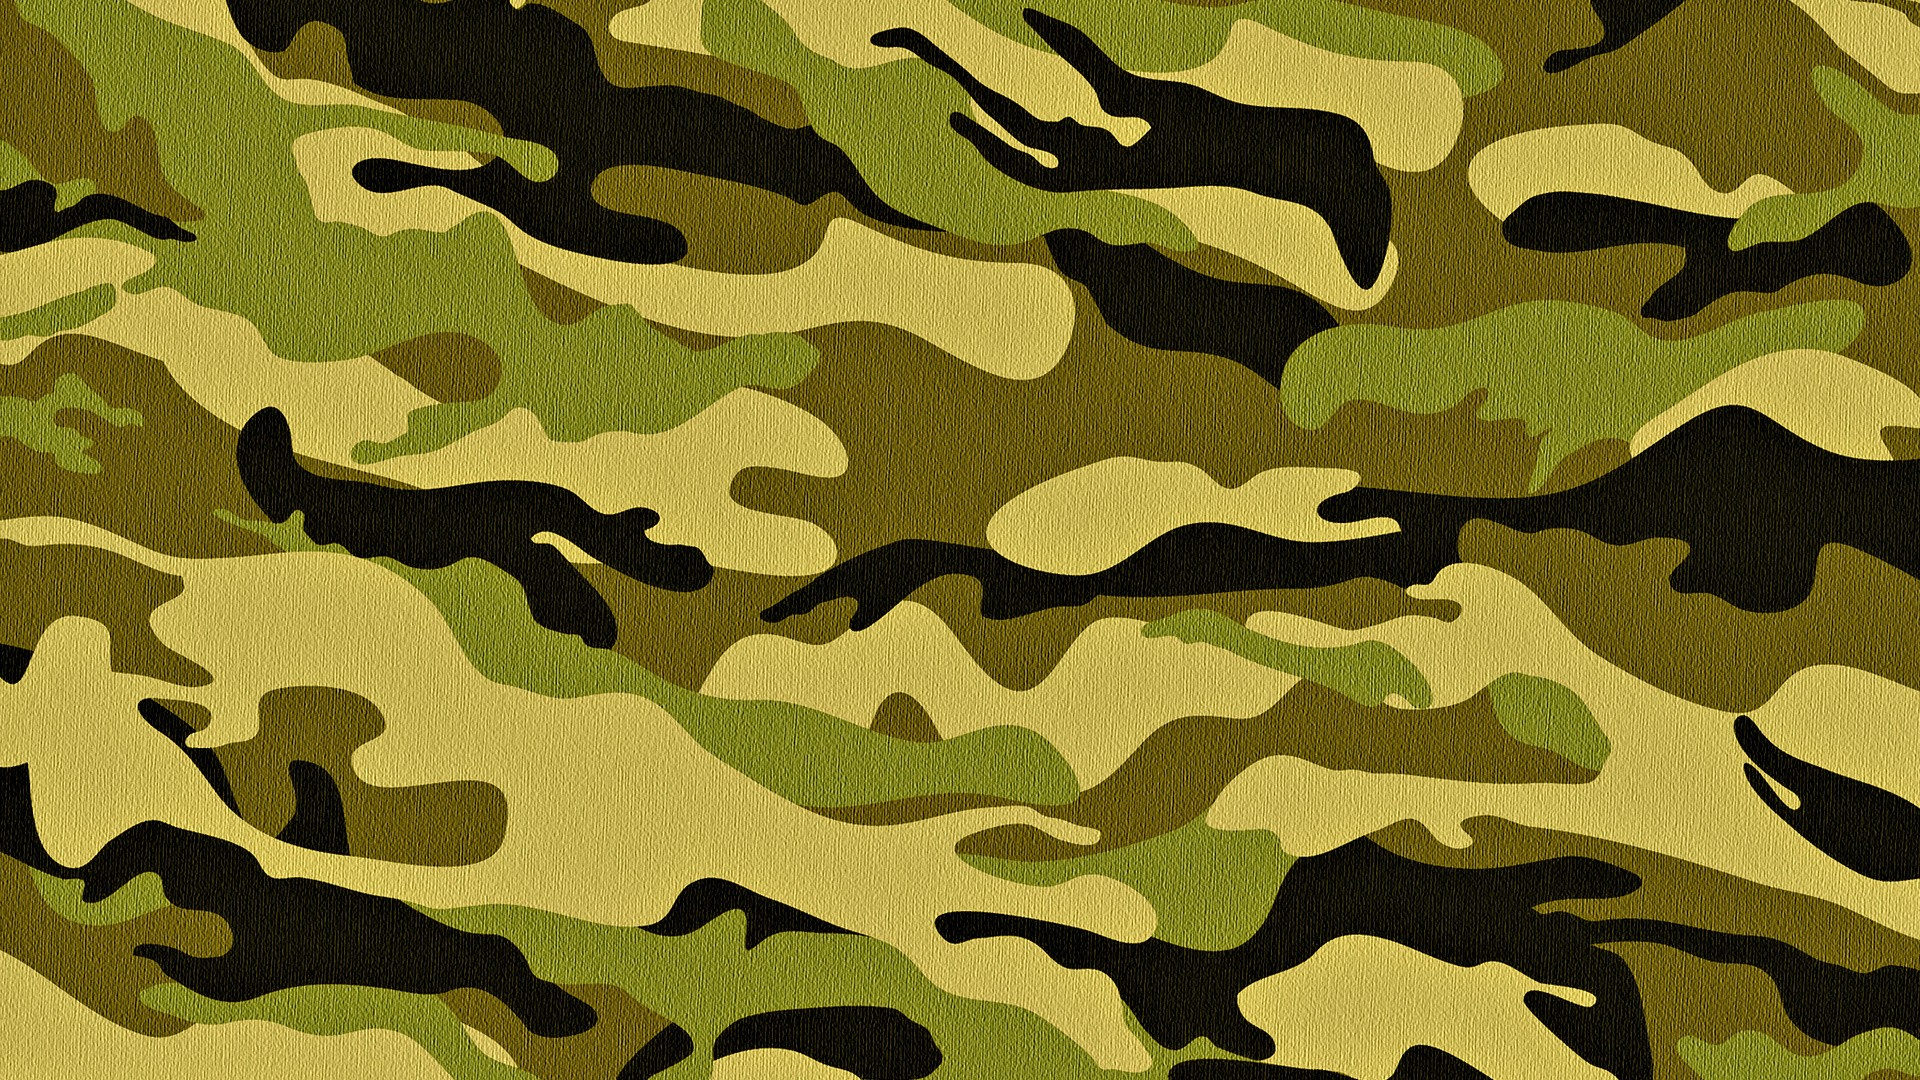 Camo Computer Wallpapers Desktop Backgrounds 1920x1080 1920x1080